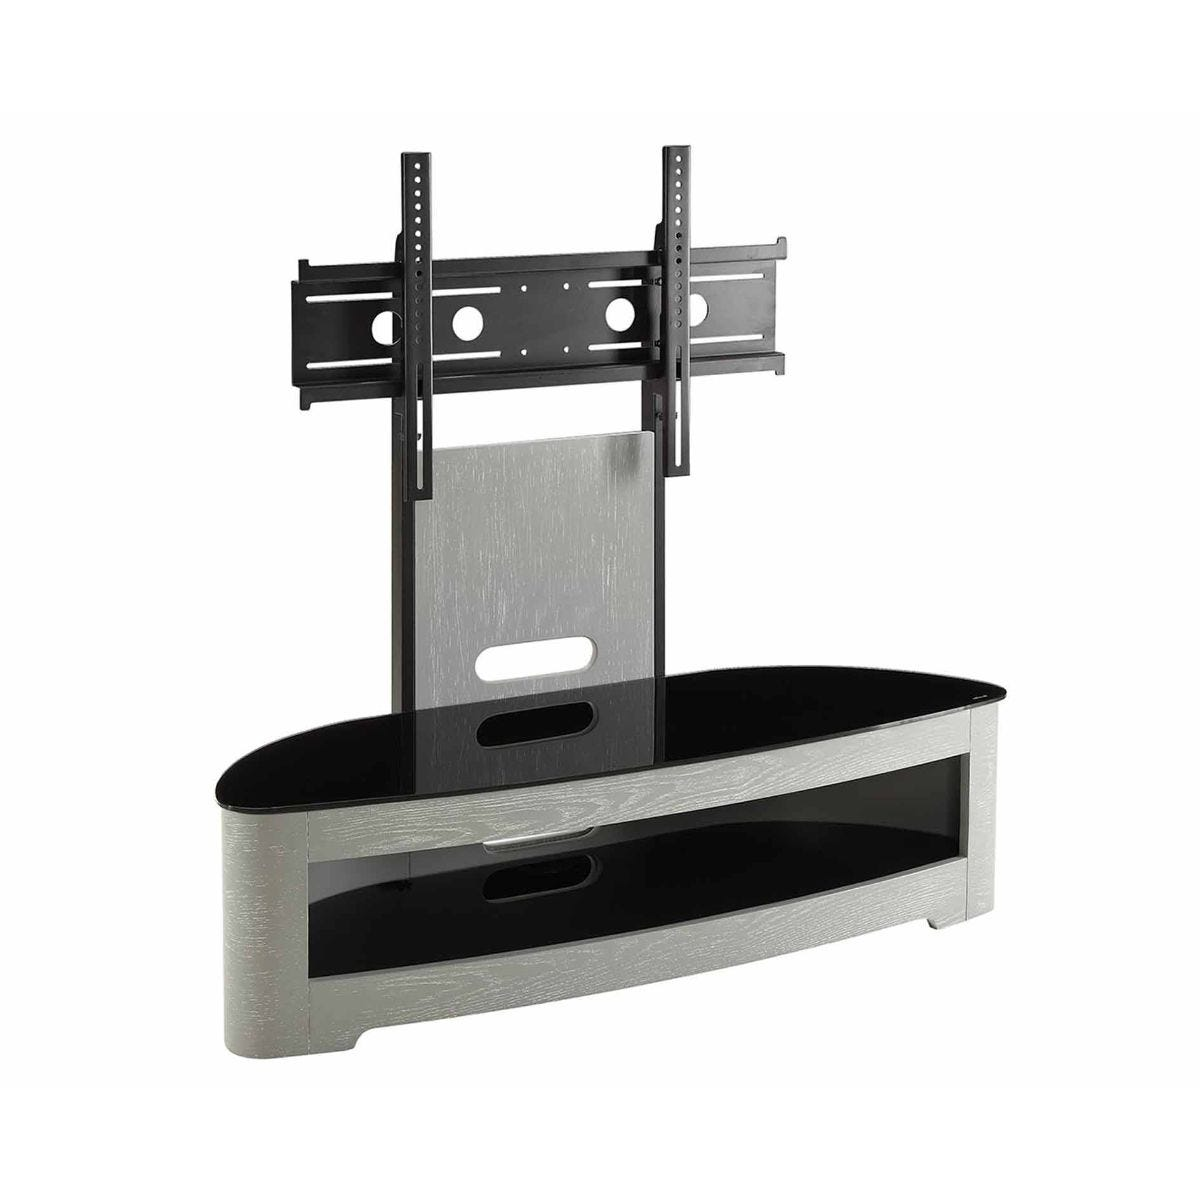 Jual Florence Cantilever TV Stand, Grey